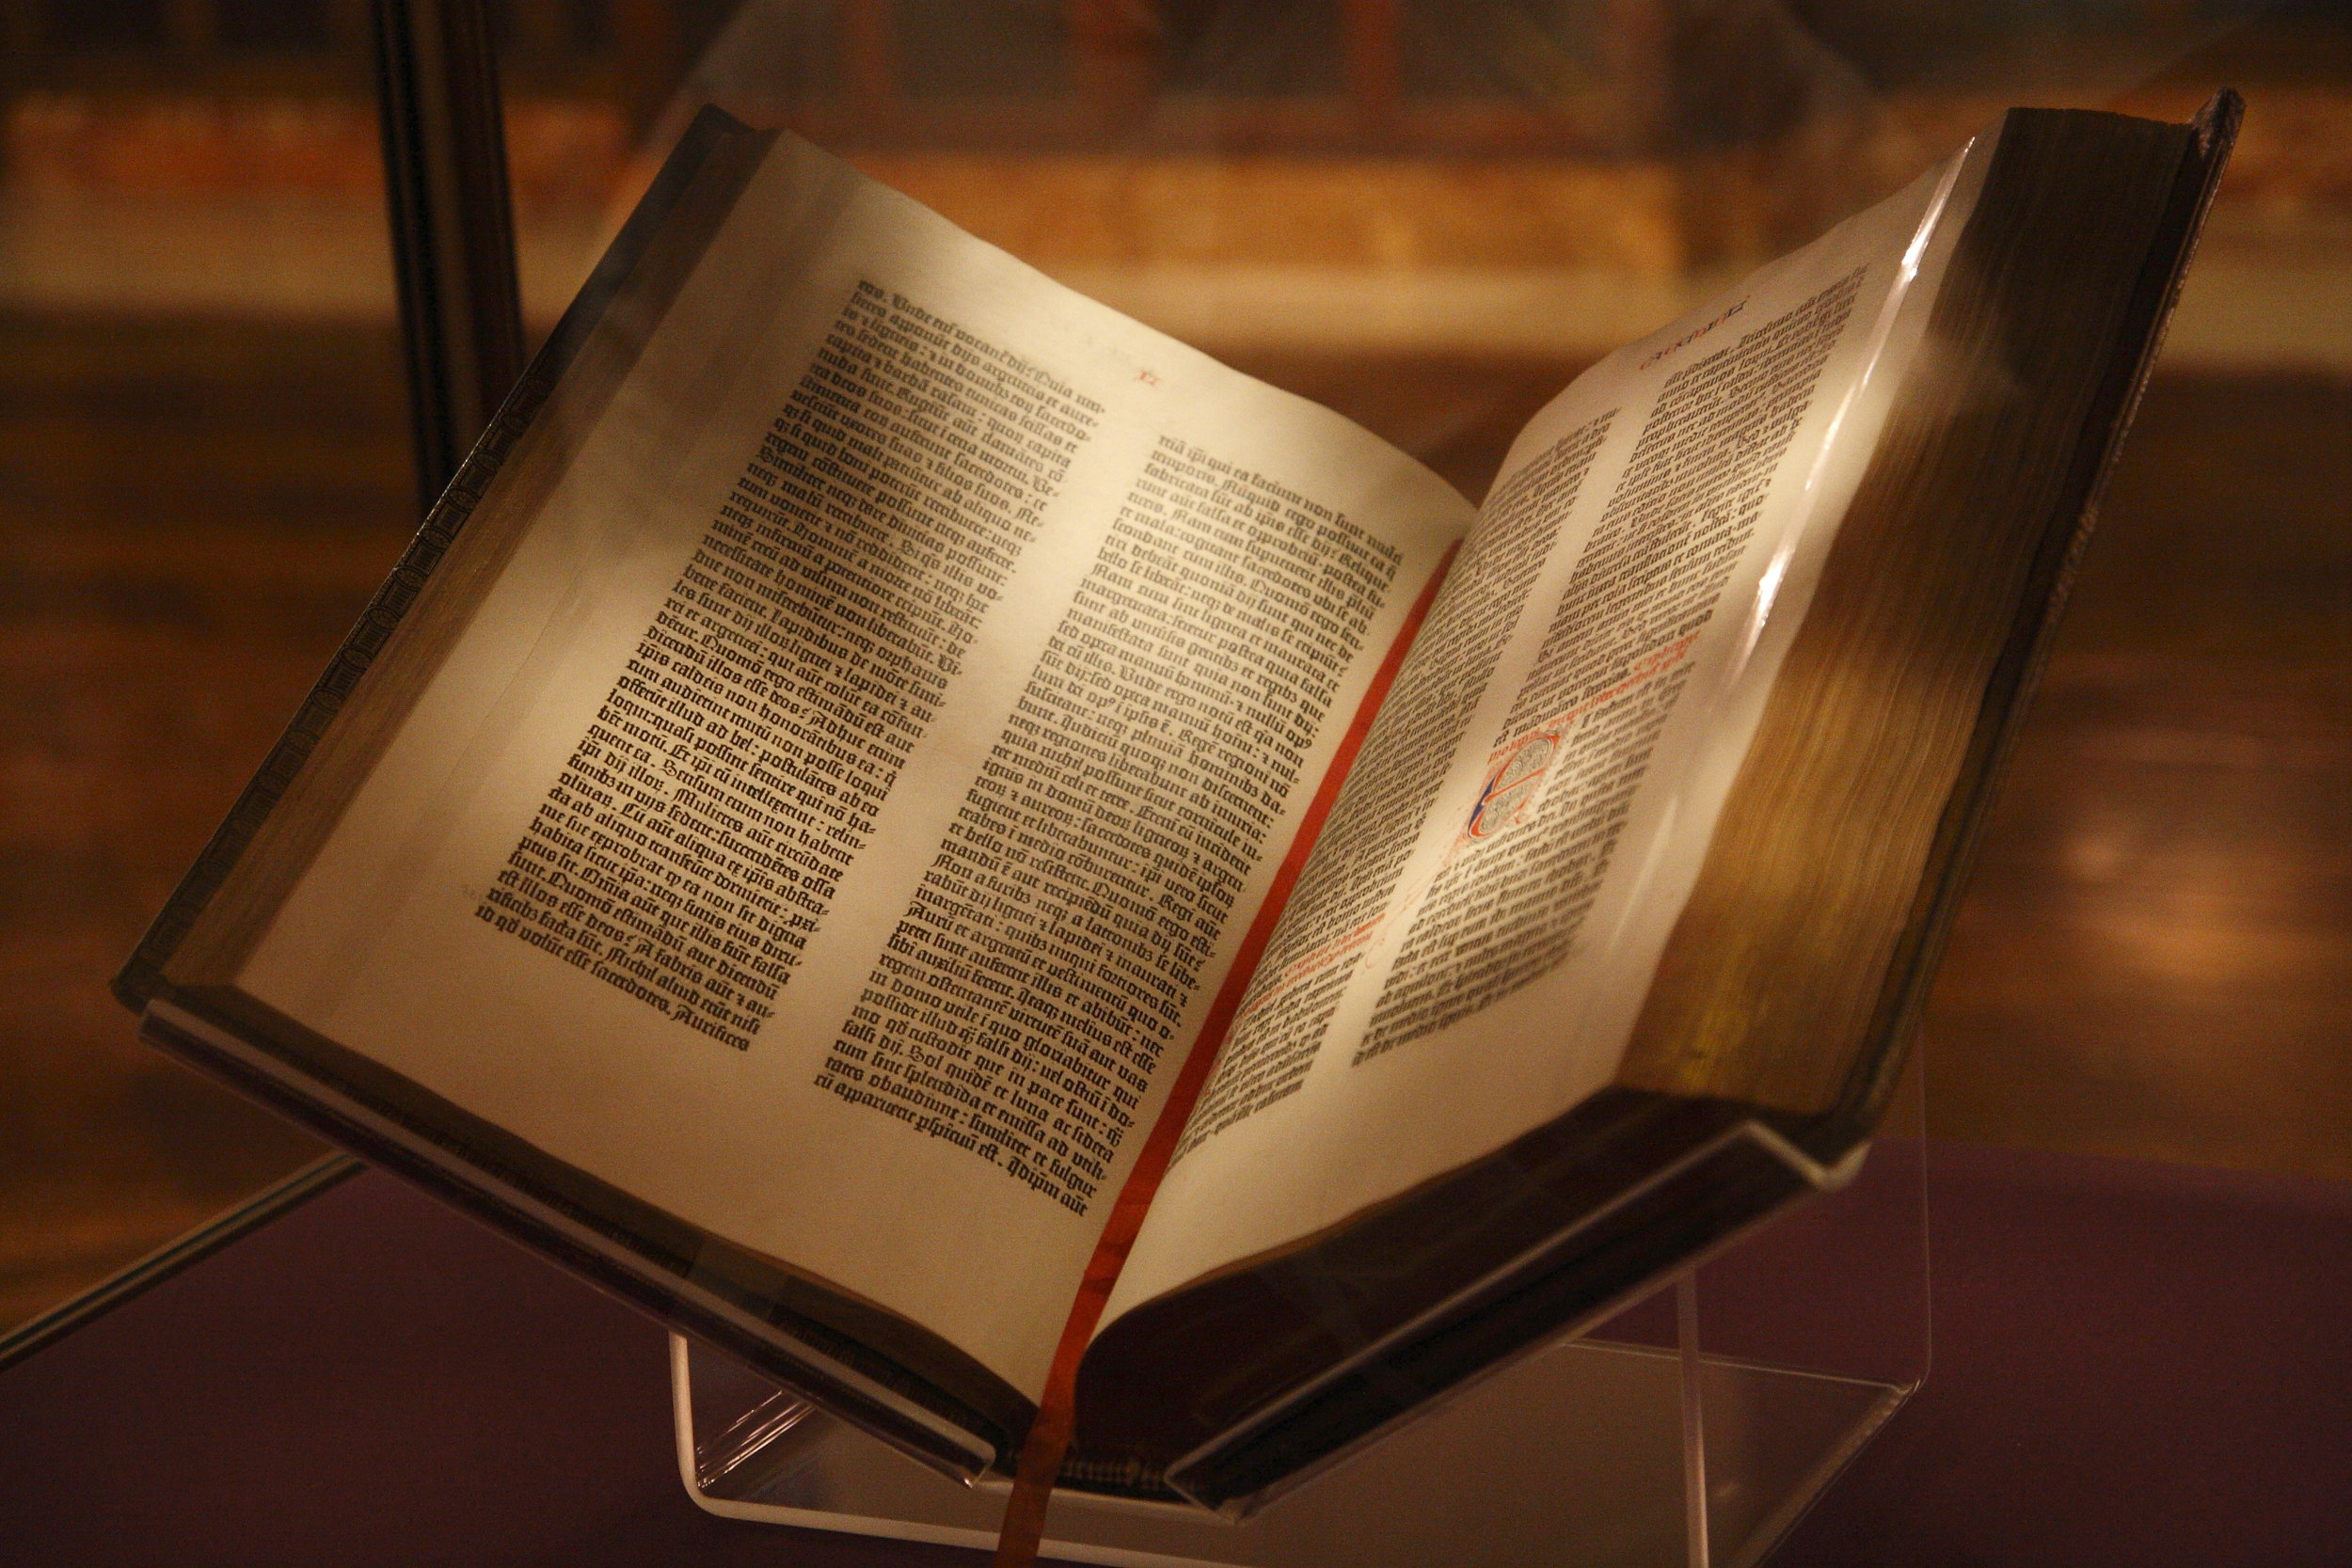 1454 - The Gutenberg Bible - the world's first book printed on a moveable type printing press is printed on Hemp paper. The few remaining original copies of the Gutenberg Bible are considered to be the most valuable books in the world with a complete copy valued at over $25 million.